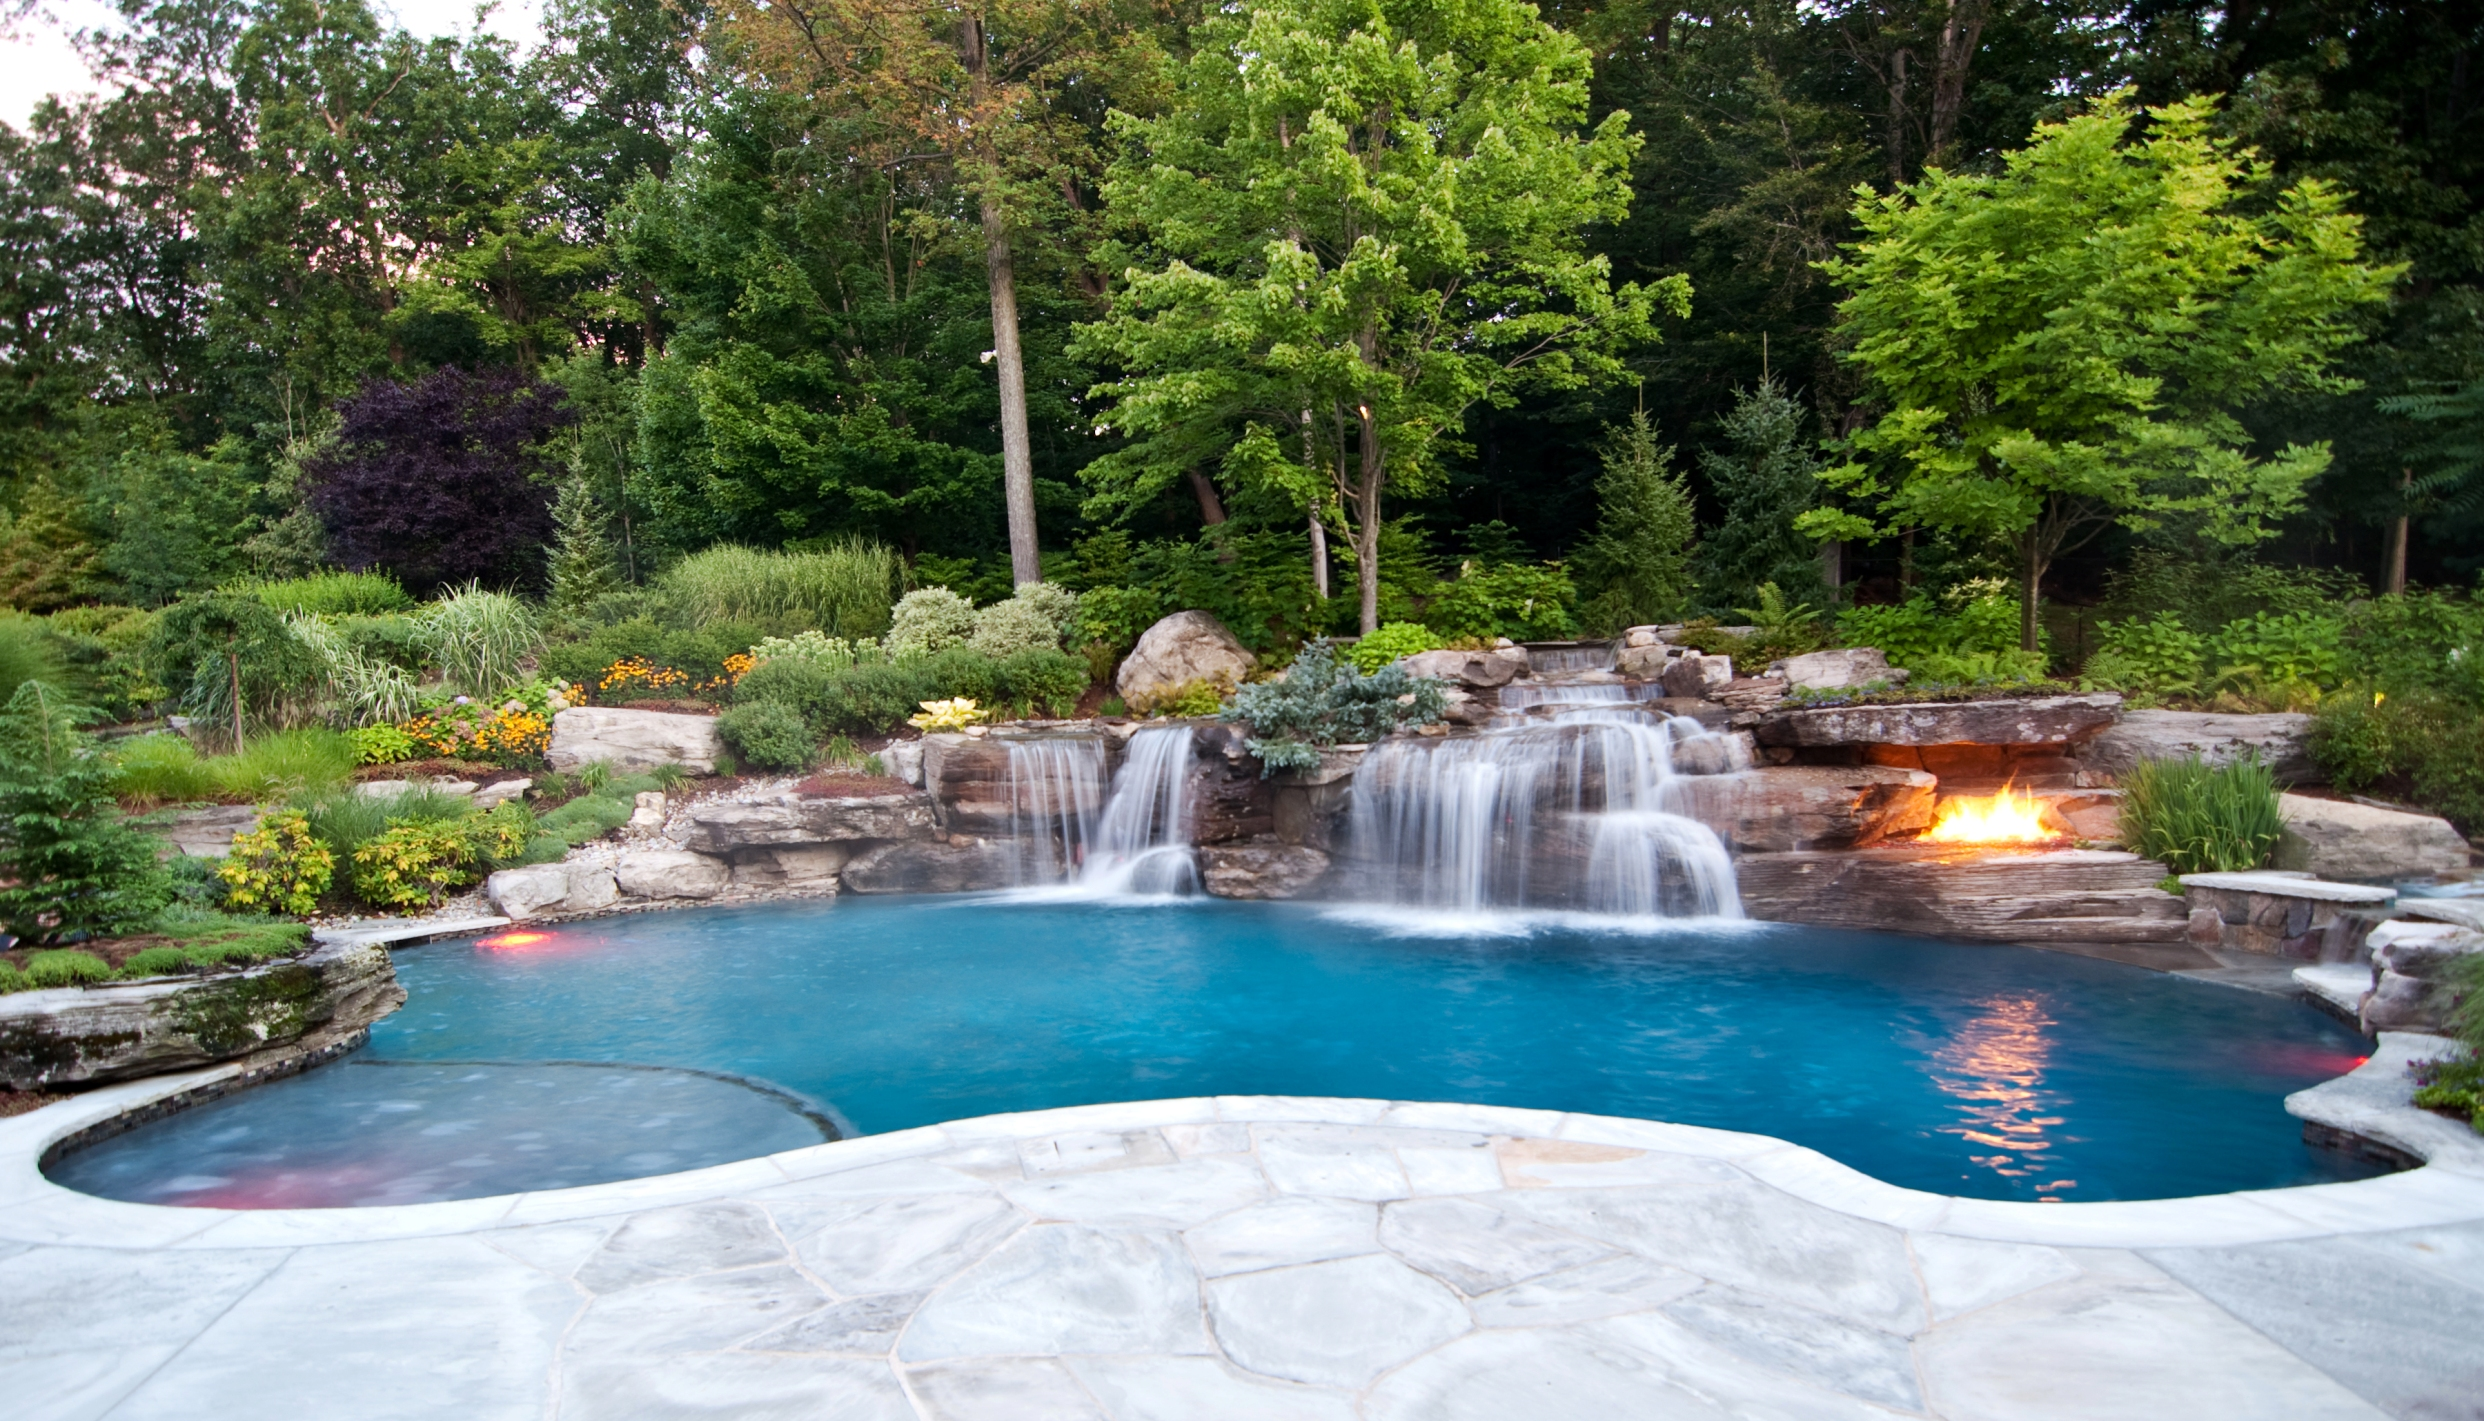 New pool construction northern virginia maryland and for Pool design virginia